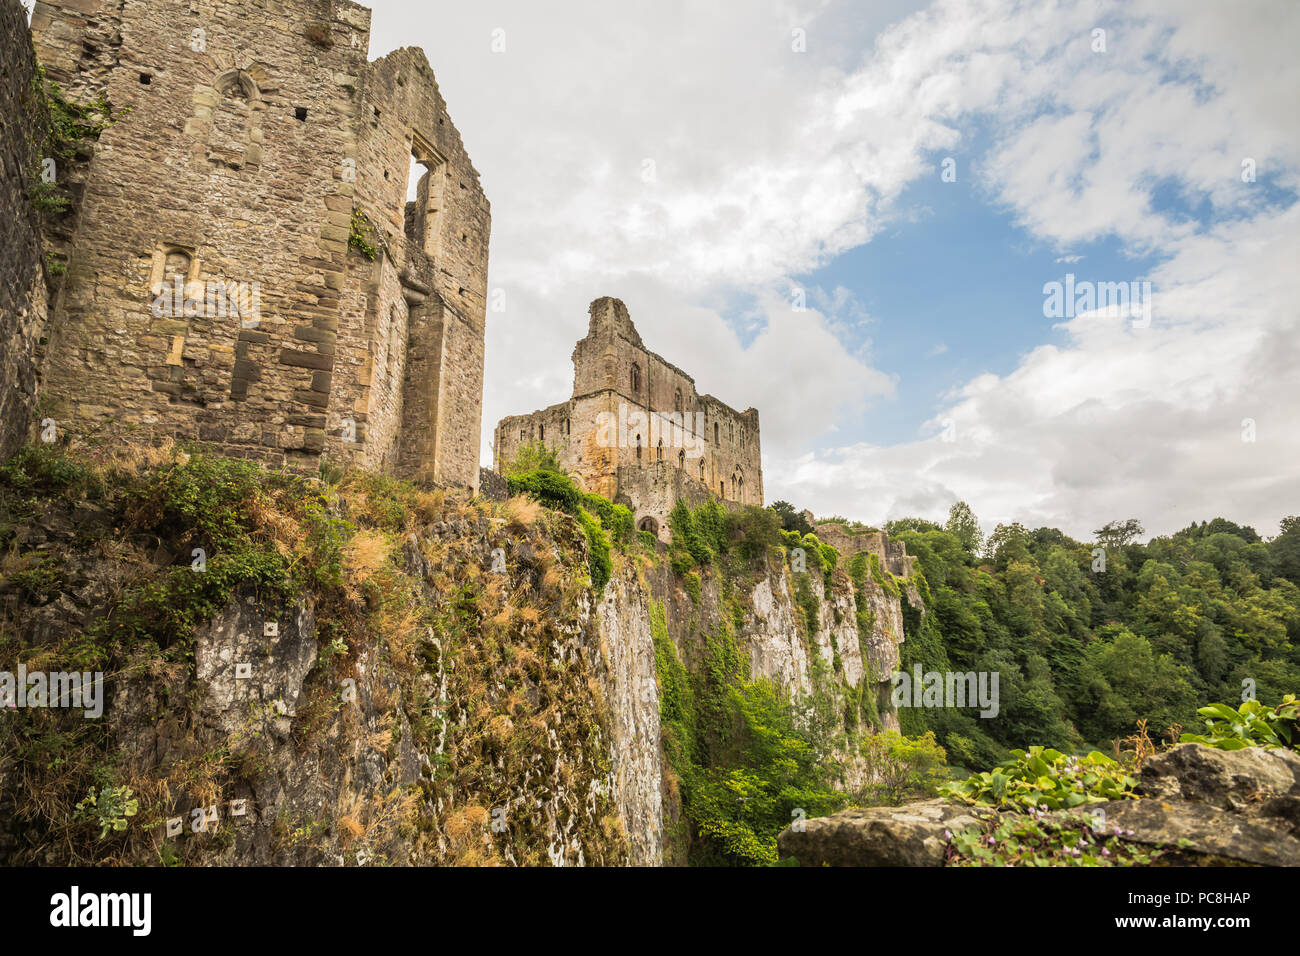 The oldest surviving post-Roman stone fortification Chepstow Castle (Castell Cas-gwent) at Chepstow, Monmouthshire in Wales - Stock Image